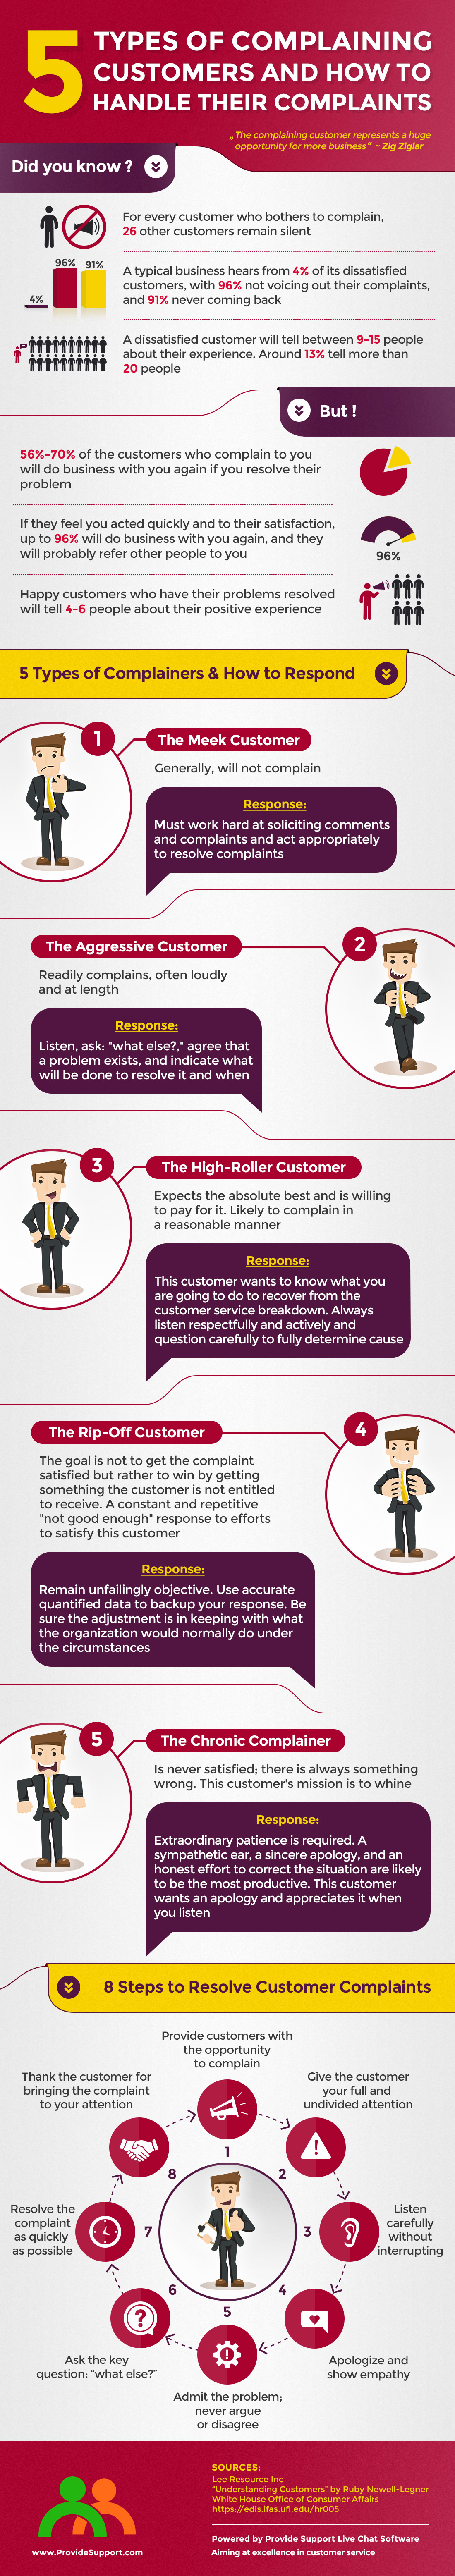 5 Types of Complaining Customers And How to Handle Their